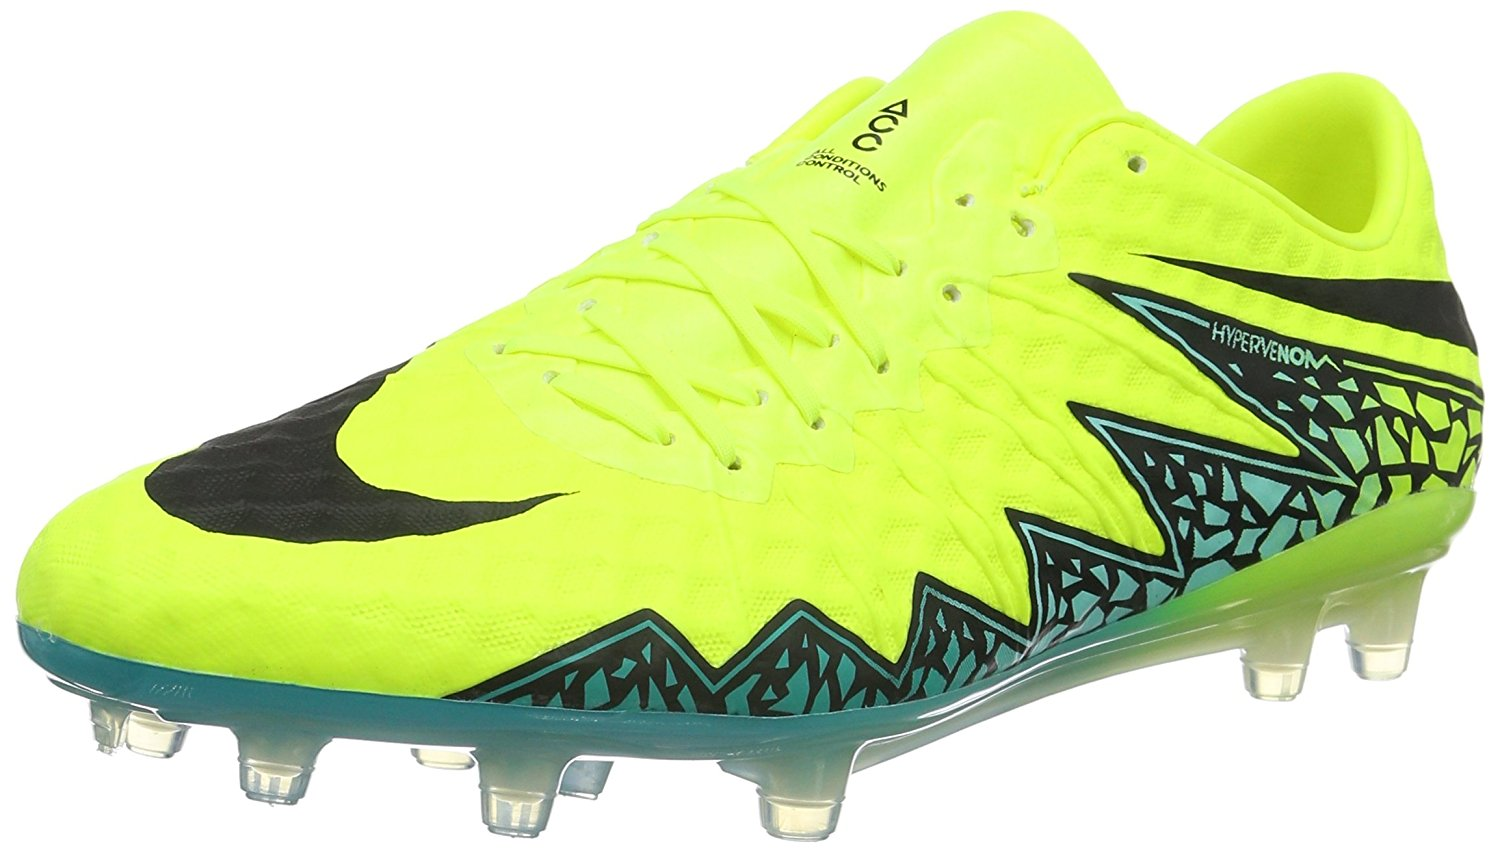 most expensive soccer cleats